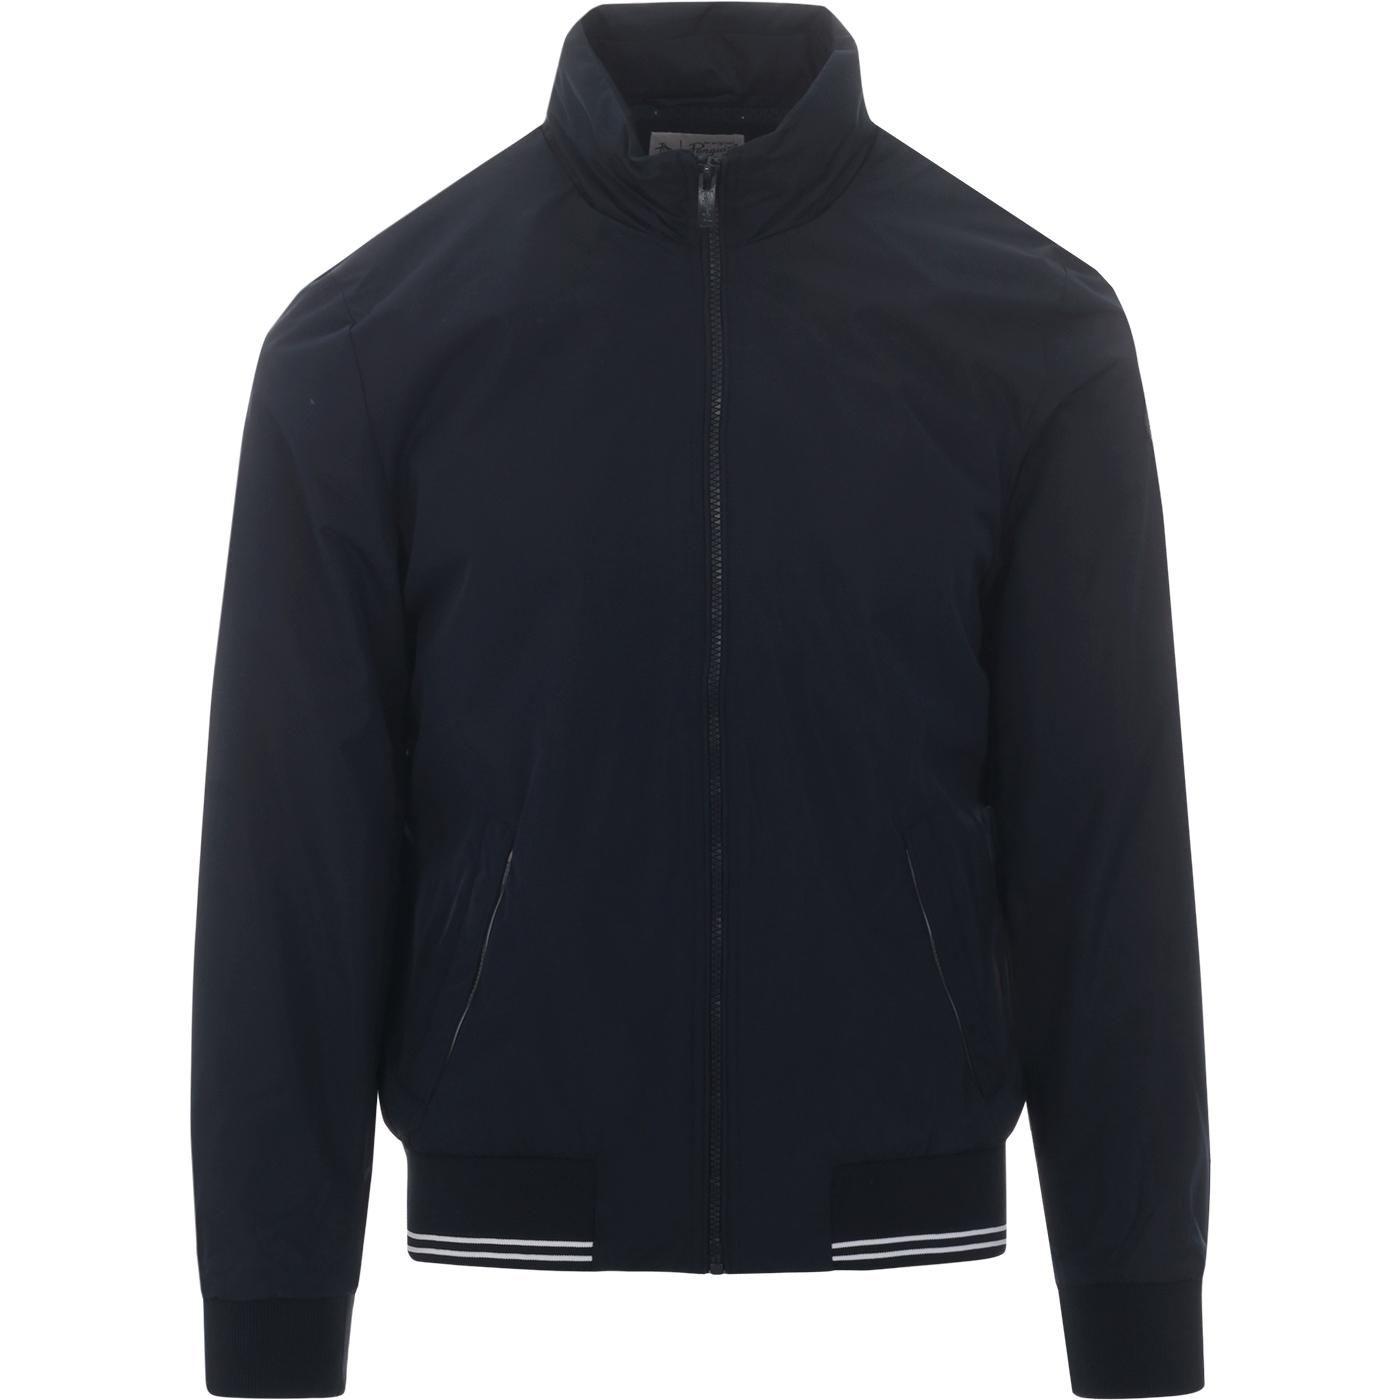 ORIGINAL PENGUIN Men's Bomber Sailing Jacket